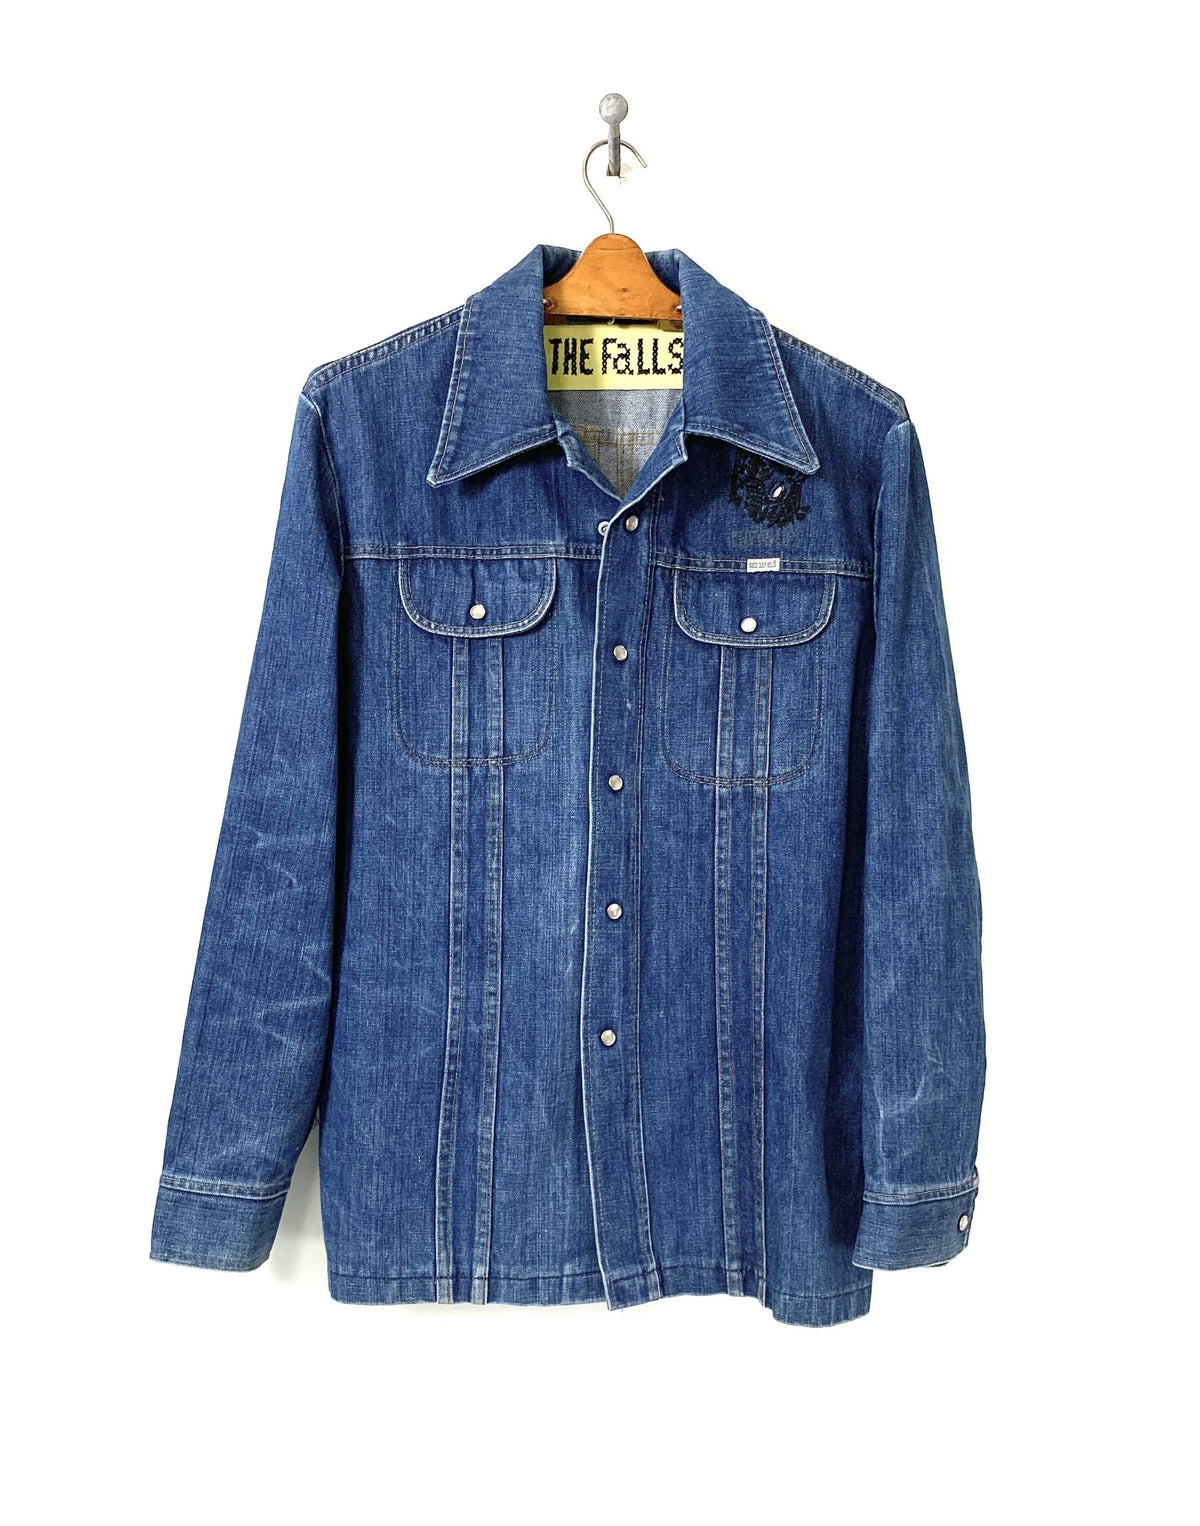 Beady eye deer denim shirt jacket